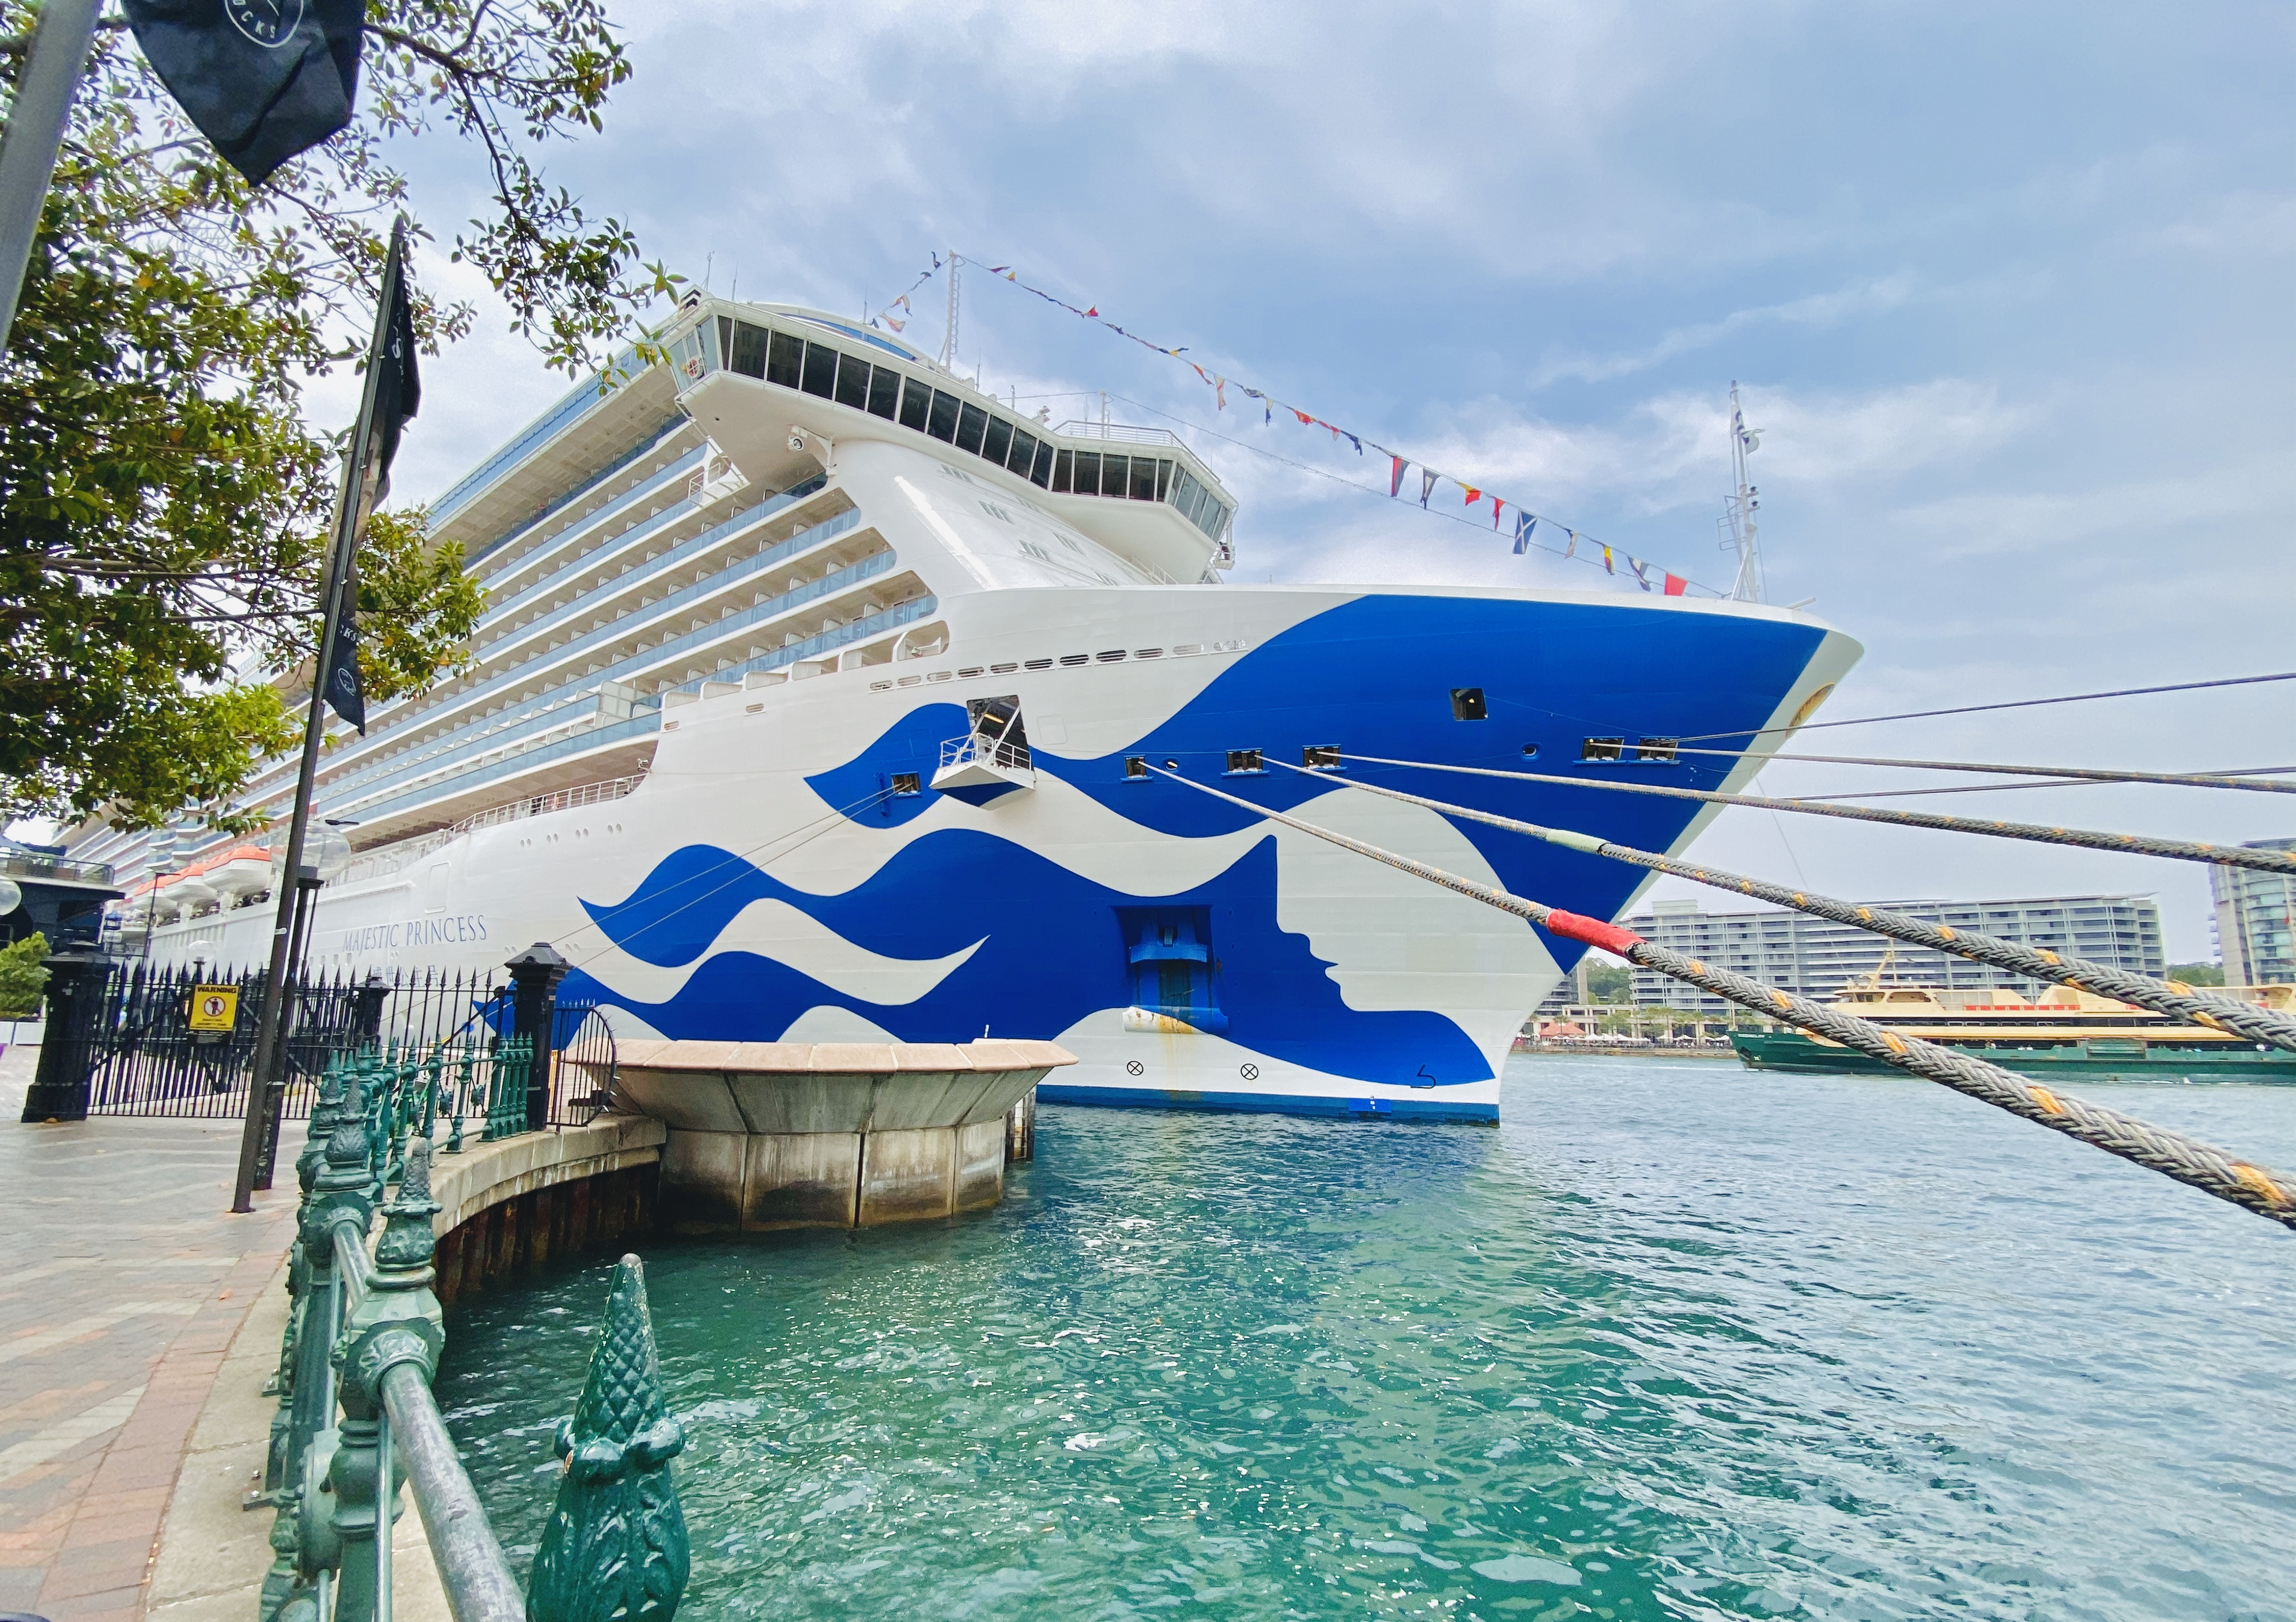 Princess Cruises - Majestic Princess - Giddy Guest